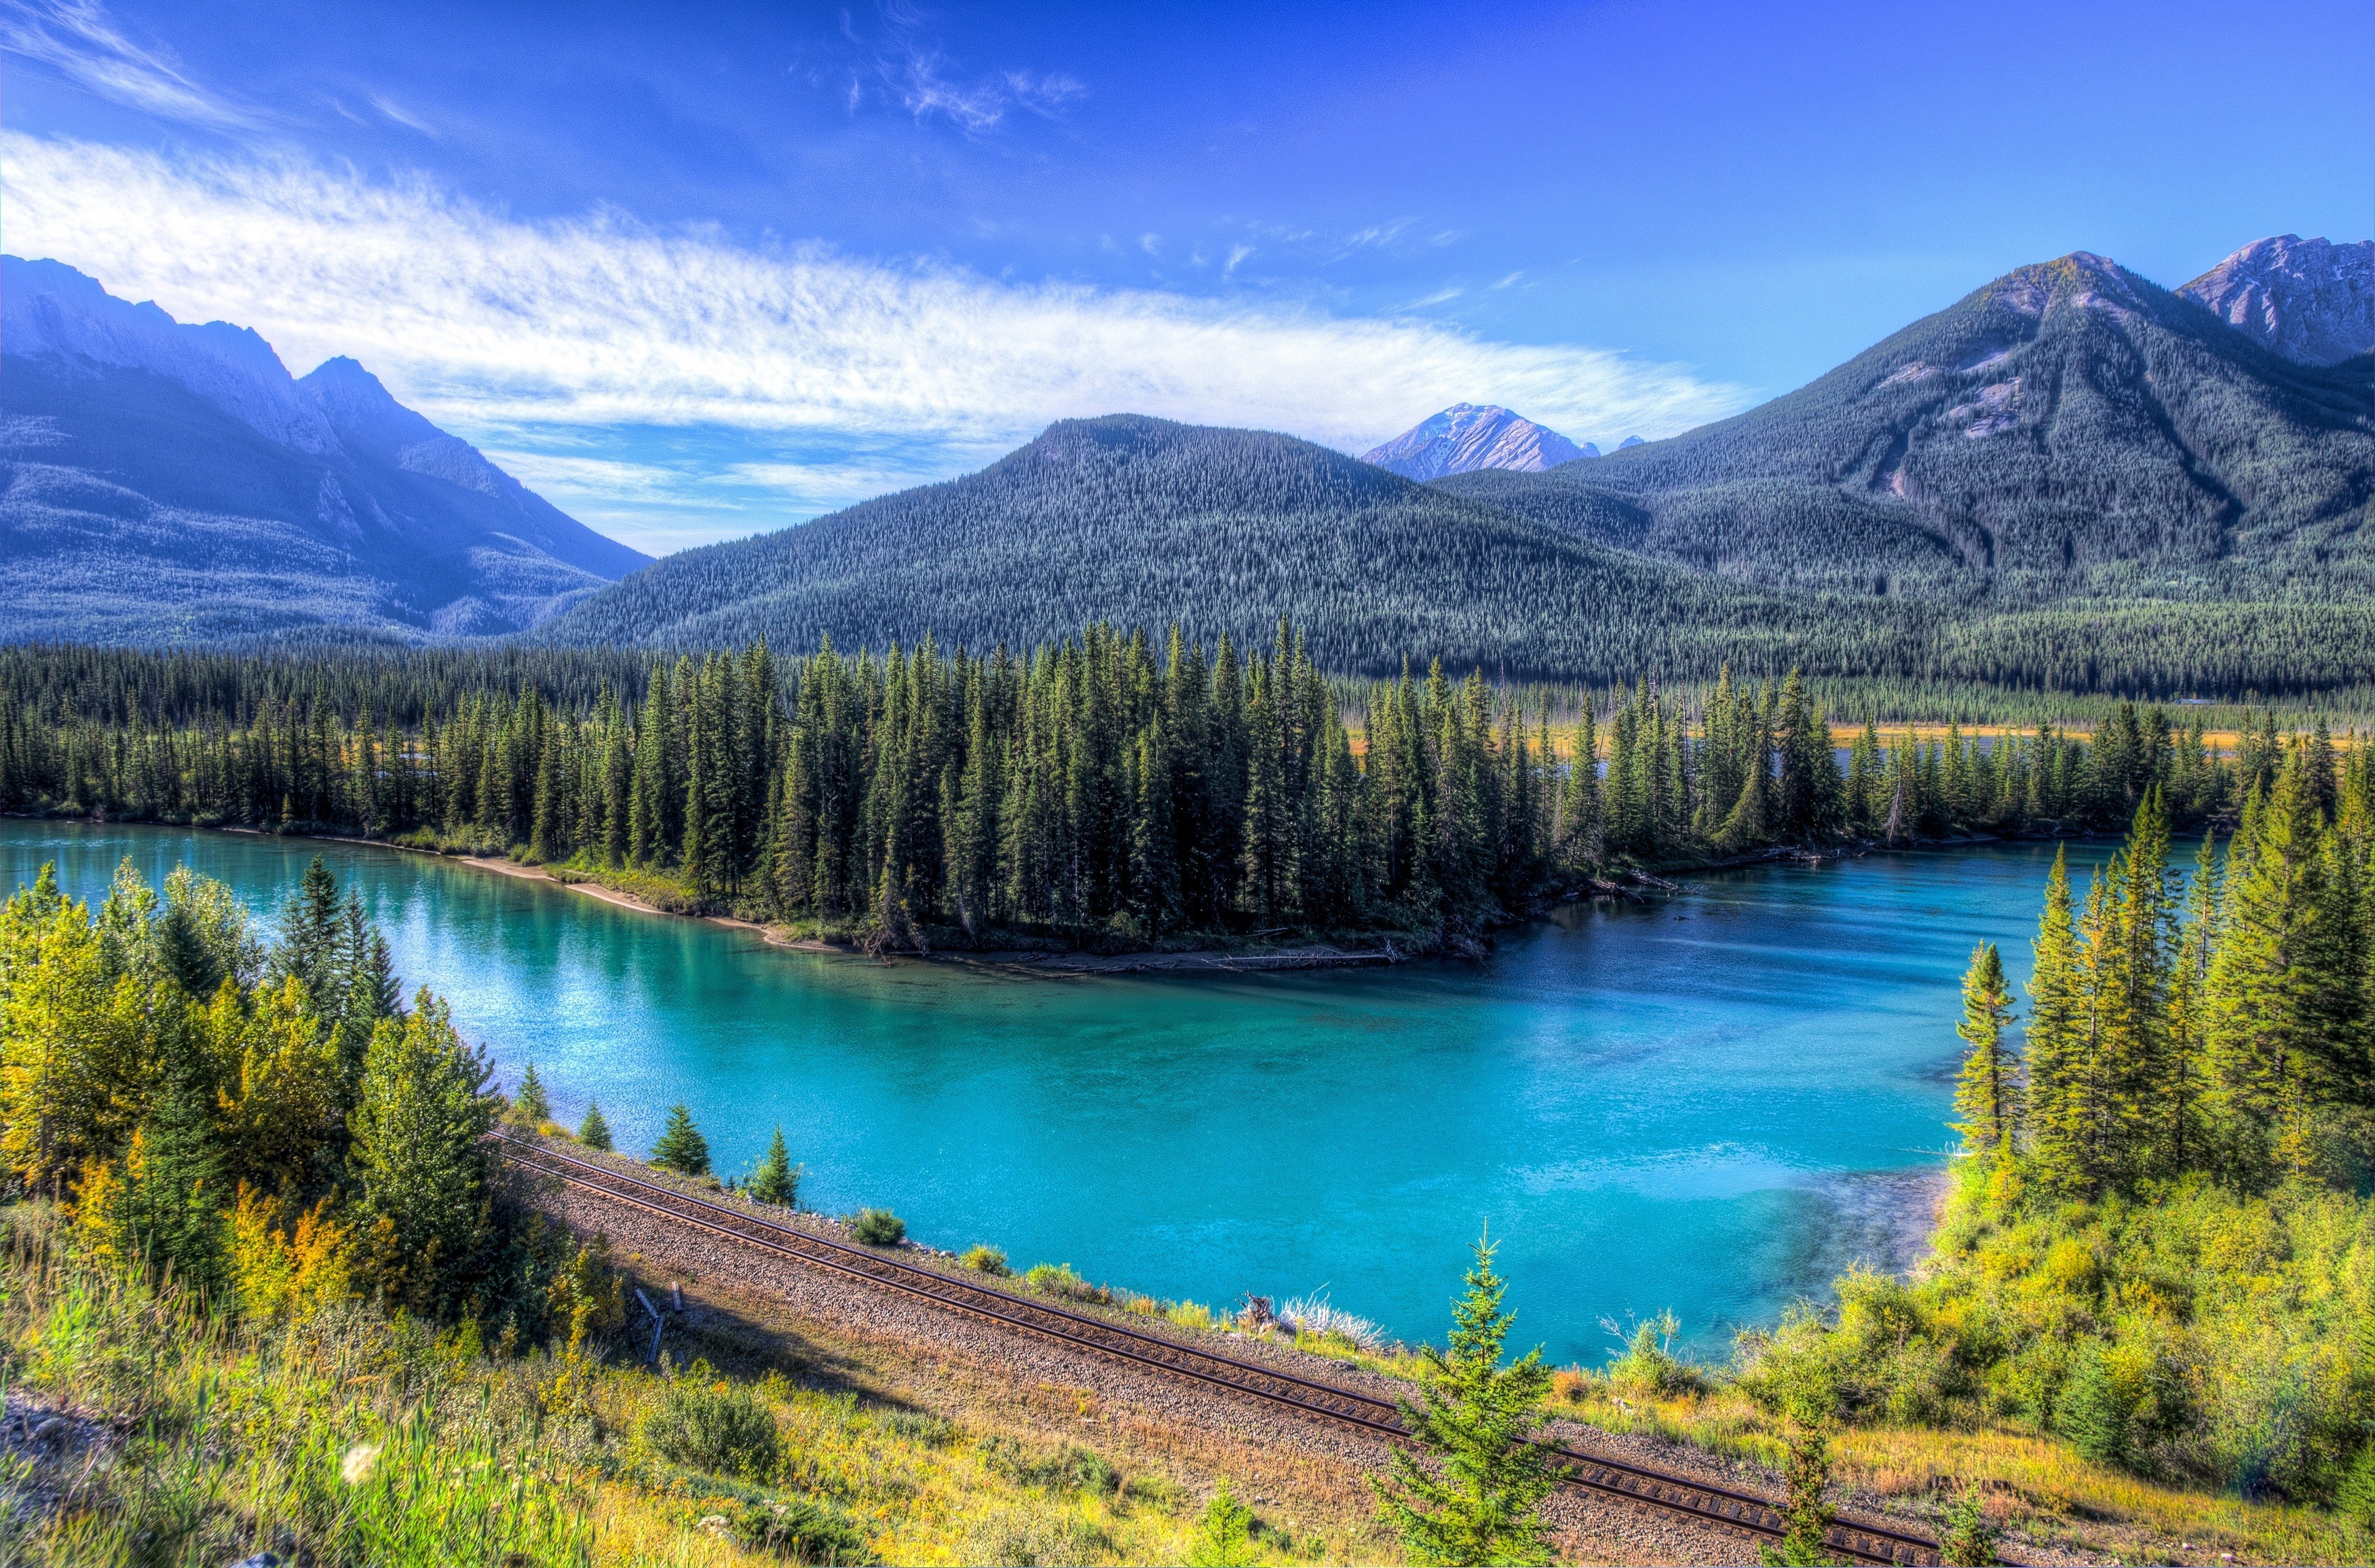 124887 download wallpaper Nature, Lake, Mountains, Landscape screensavers and pictures for free